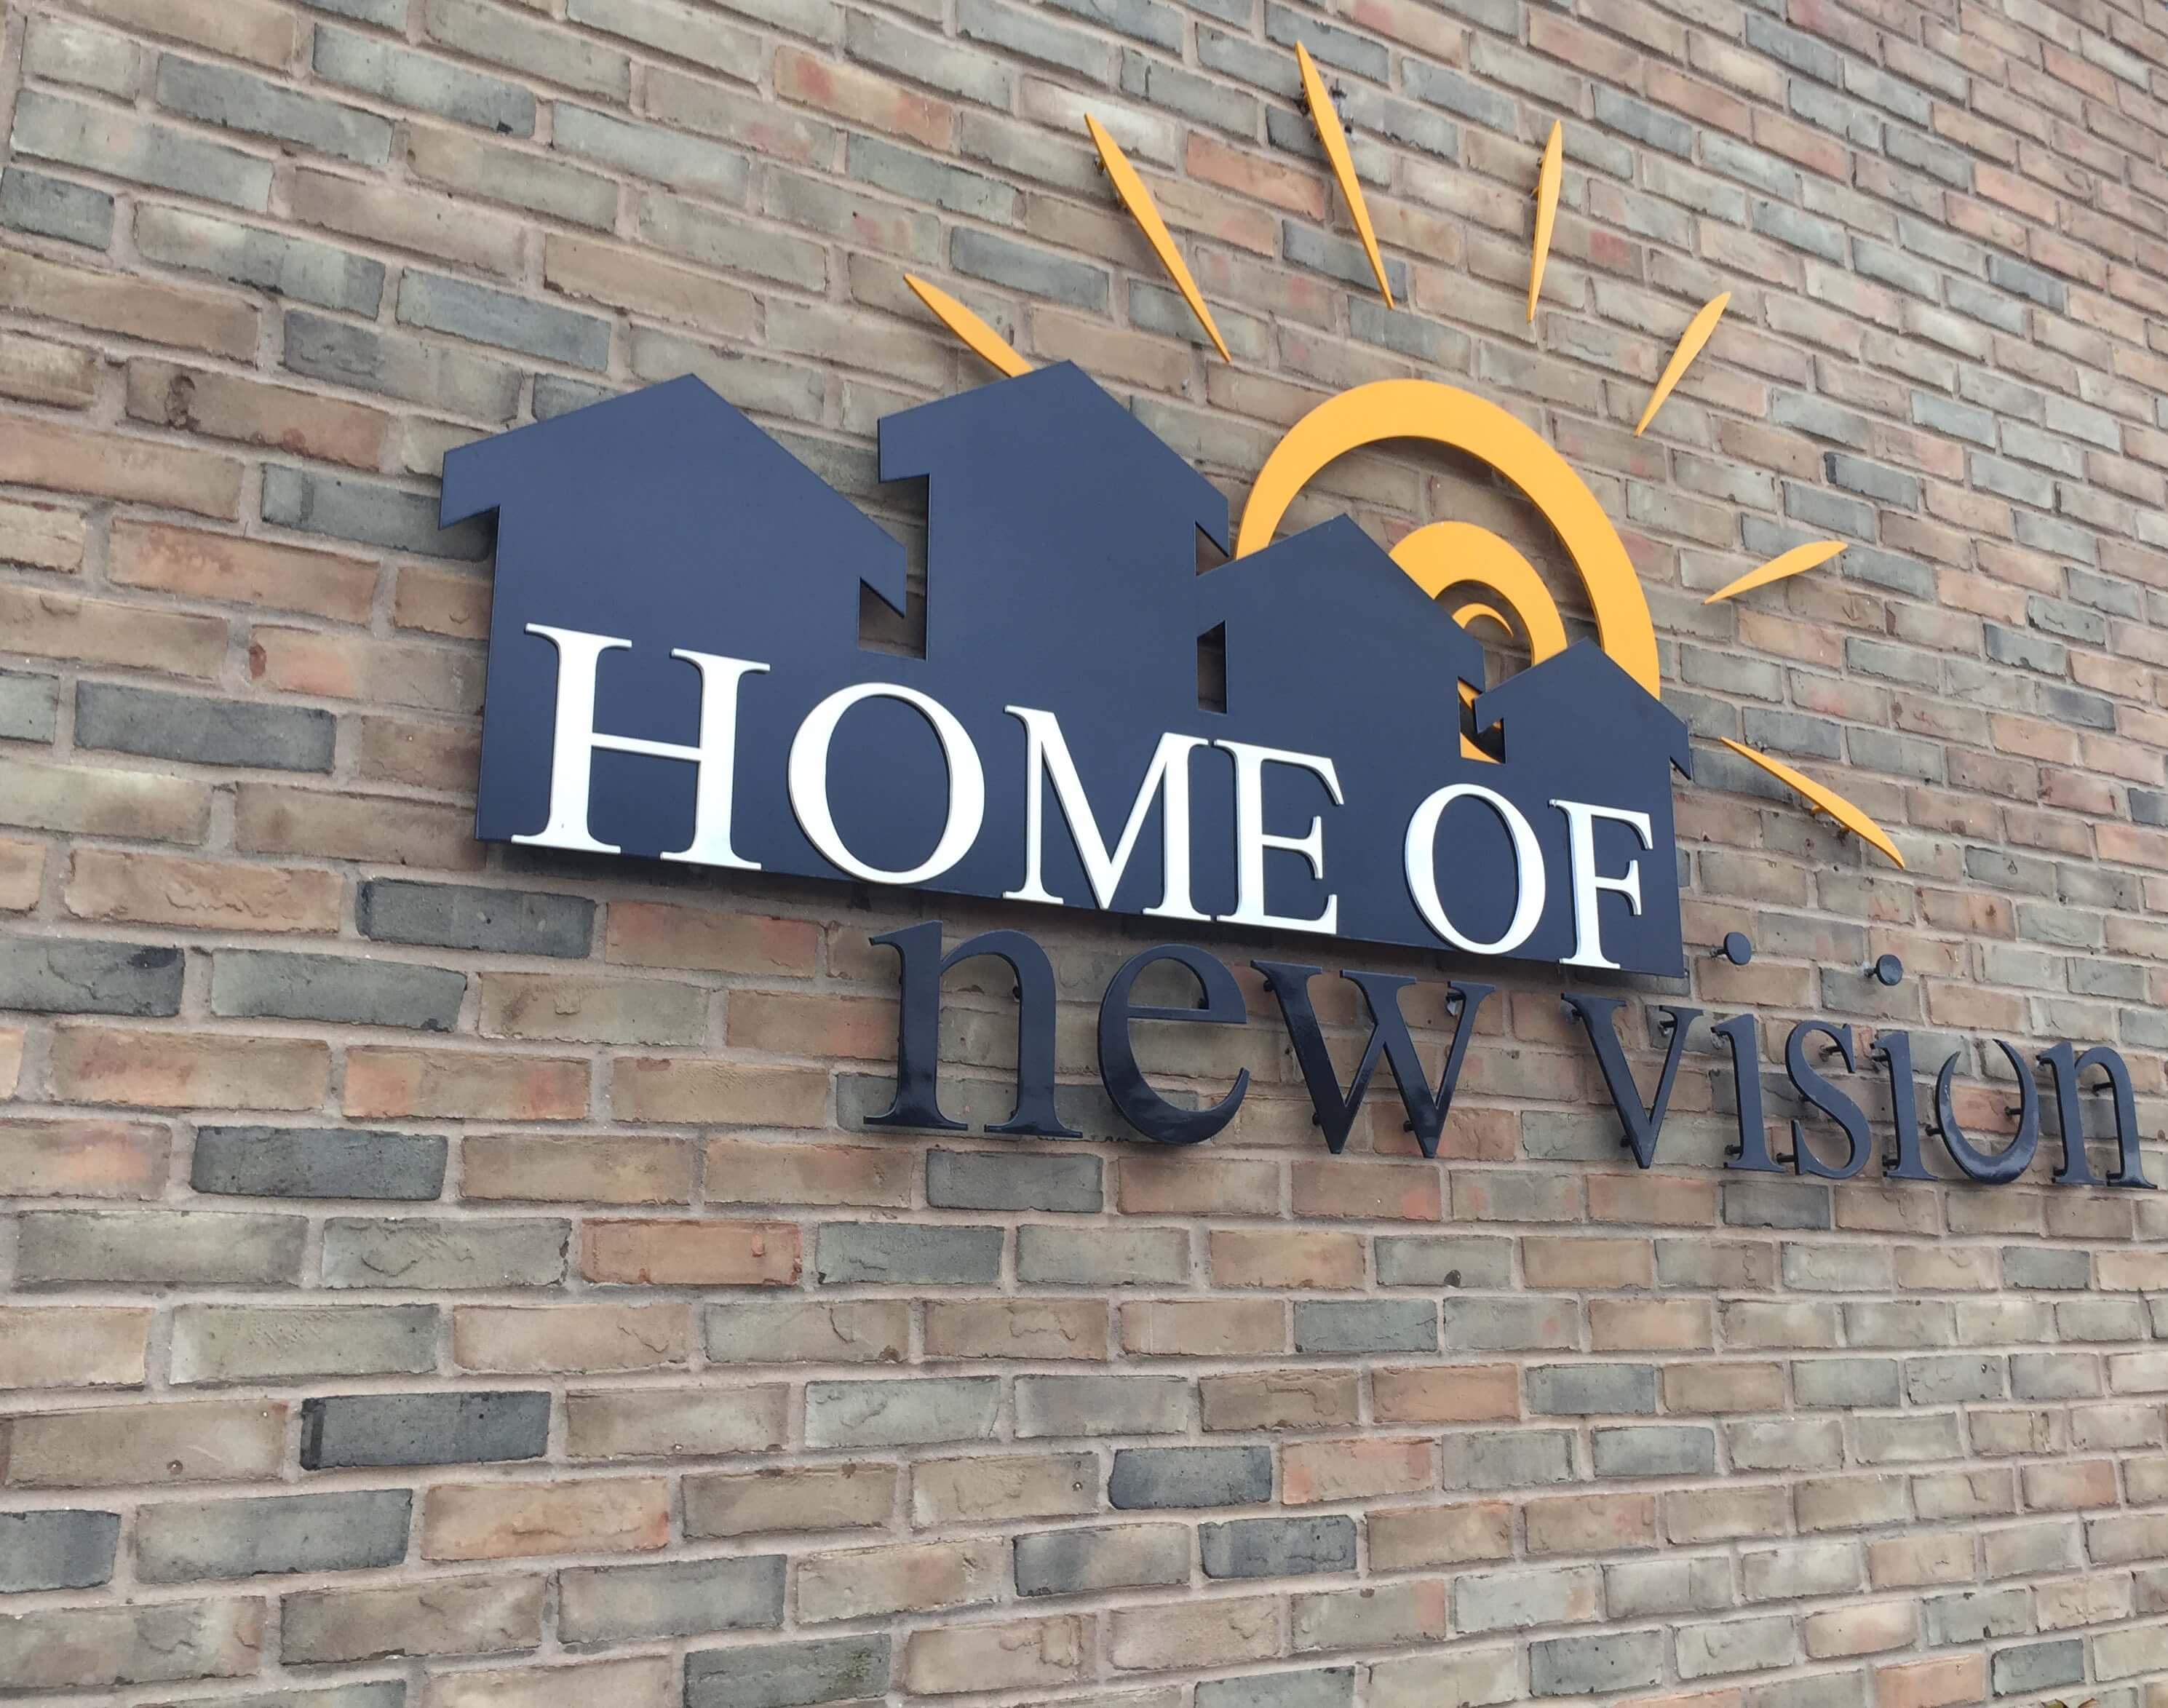 Home of new vision logo on the side of the building